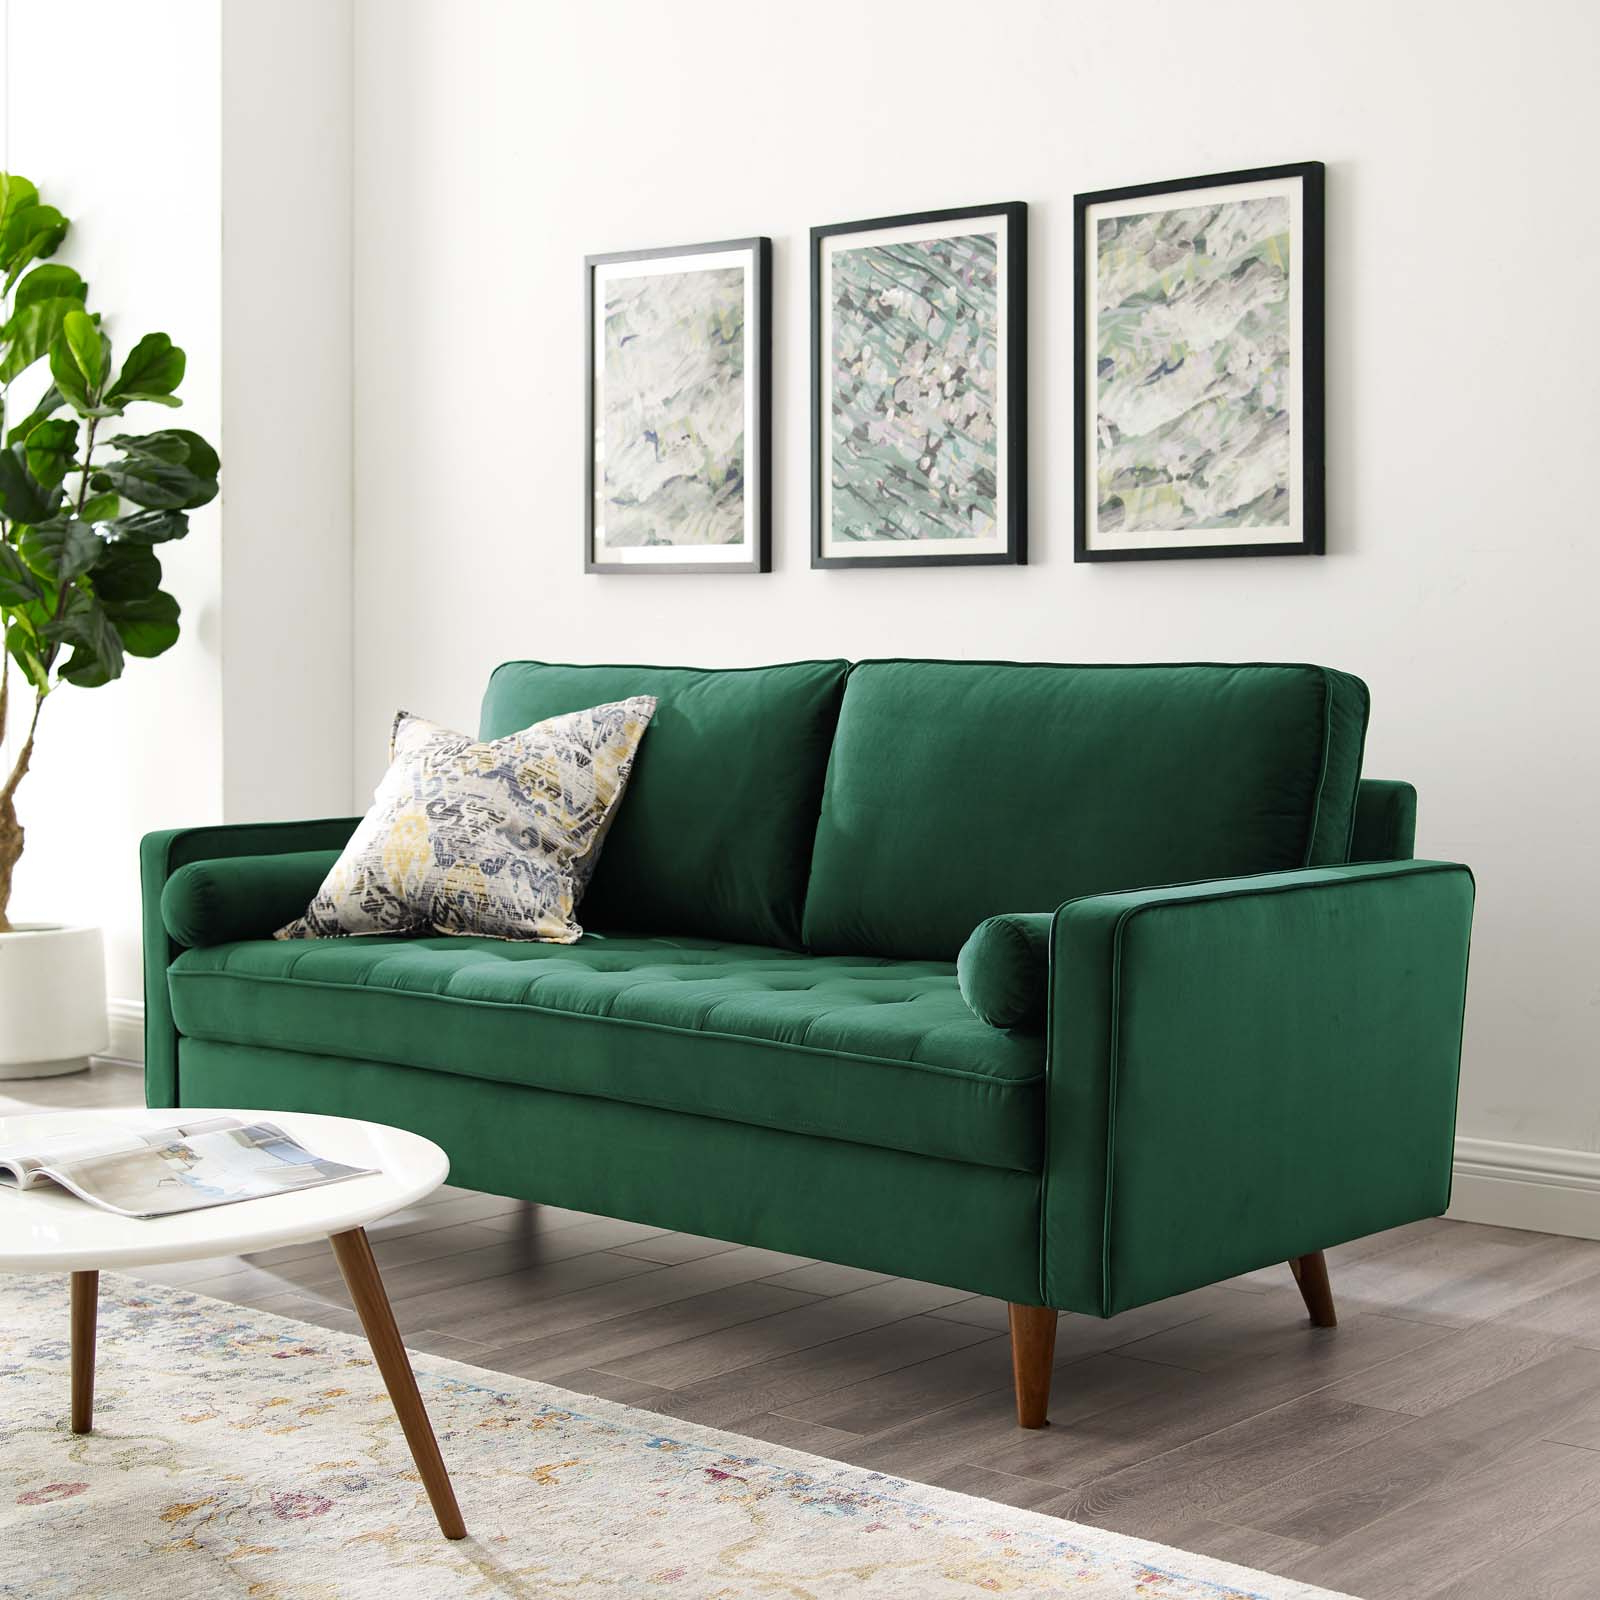 French Seamed Sectional Sofas In Velvet With Regard To Most Recently Released Valour Performance Velvet Sofa Green (View 4 of 25)